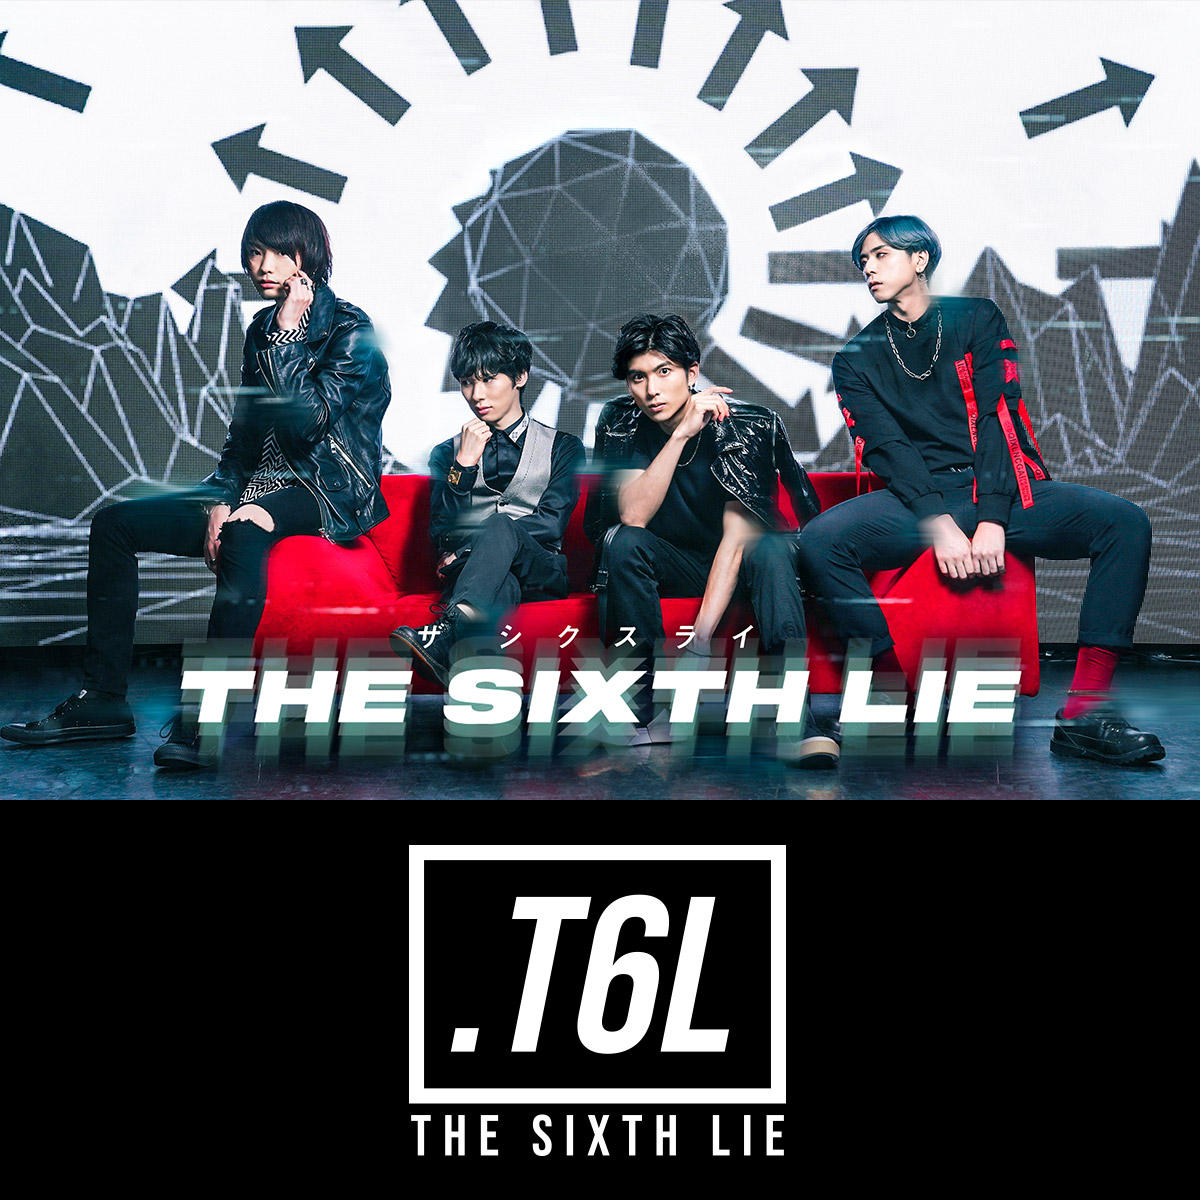 THE SIXTH LIE